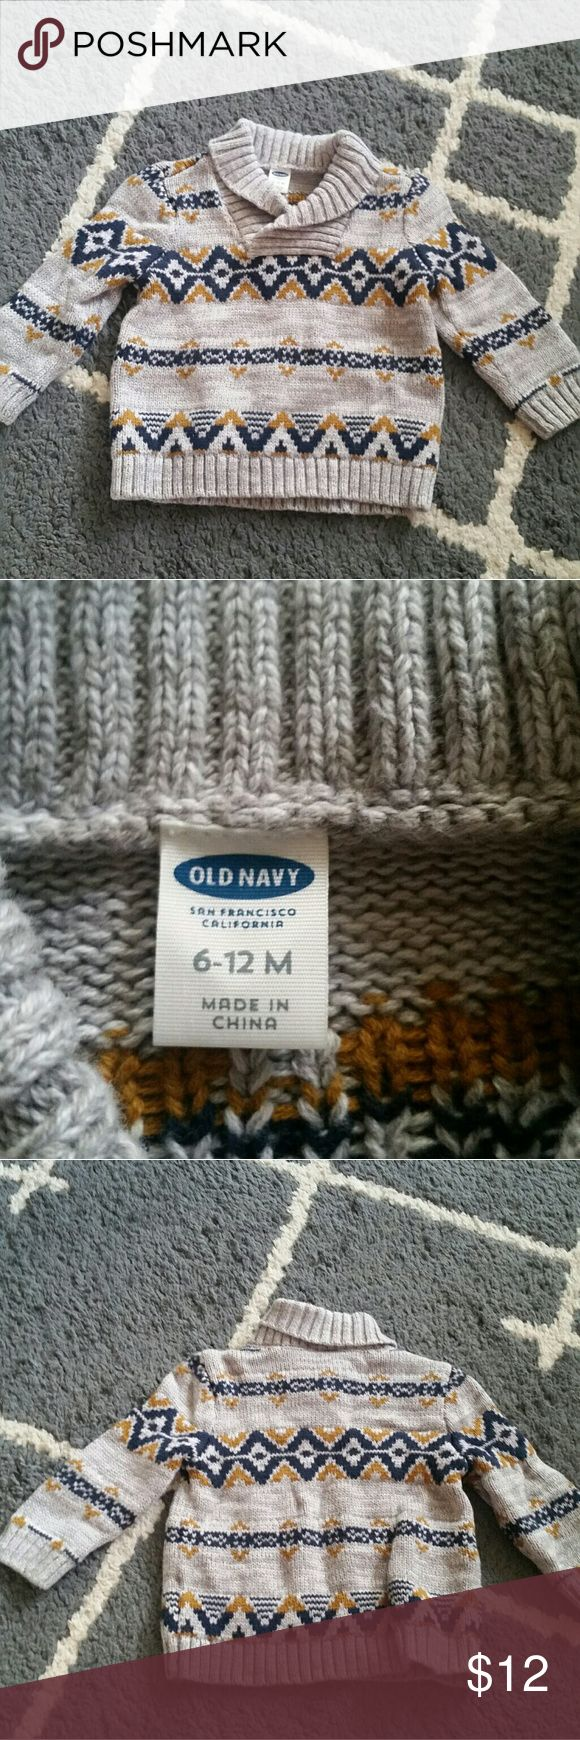 Cozy dressy sweater Size 6 to 12 months. Color gray with pattern. Chunky sweater.. warm and cozy with a options of dressing it up or down. Worn a couple of times in great condition. Feel free to ask any questions. Bundle to save on shipping up to 5lbs.  ♡♡♡Thanks for visiting my closet ♡♡♡ Old Navy Shirts & Tops Sweaters